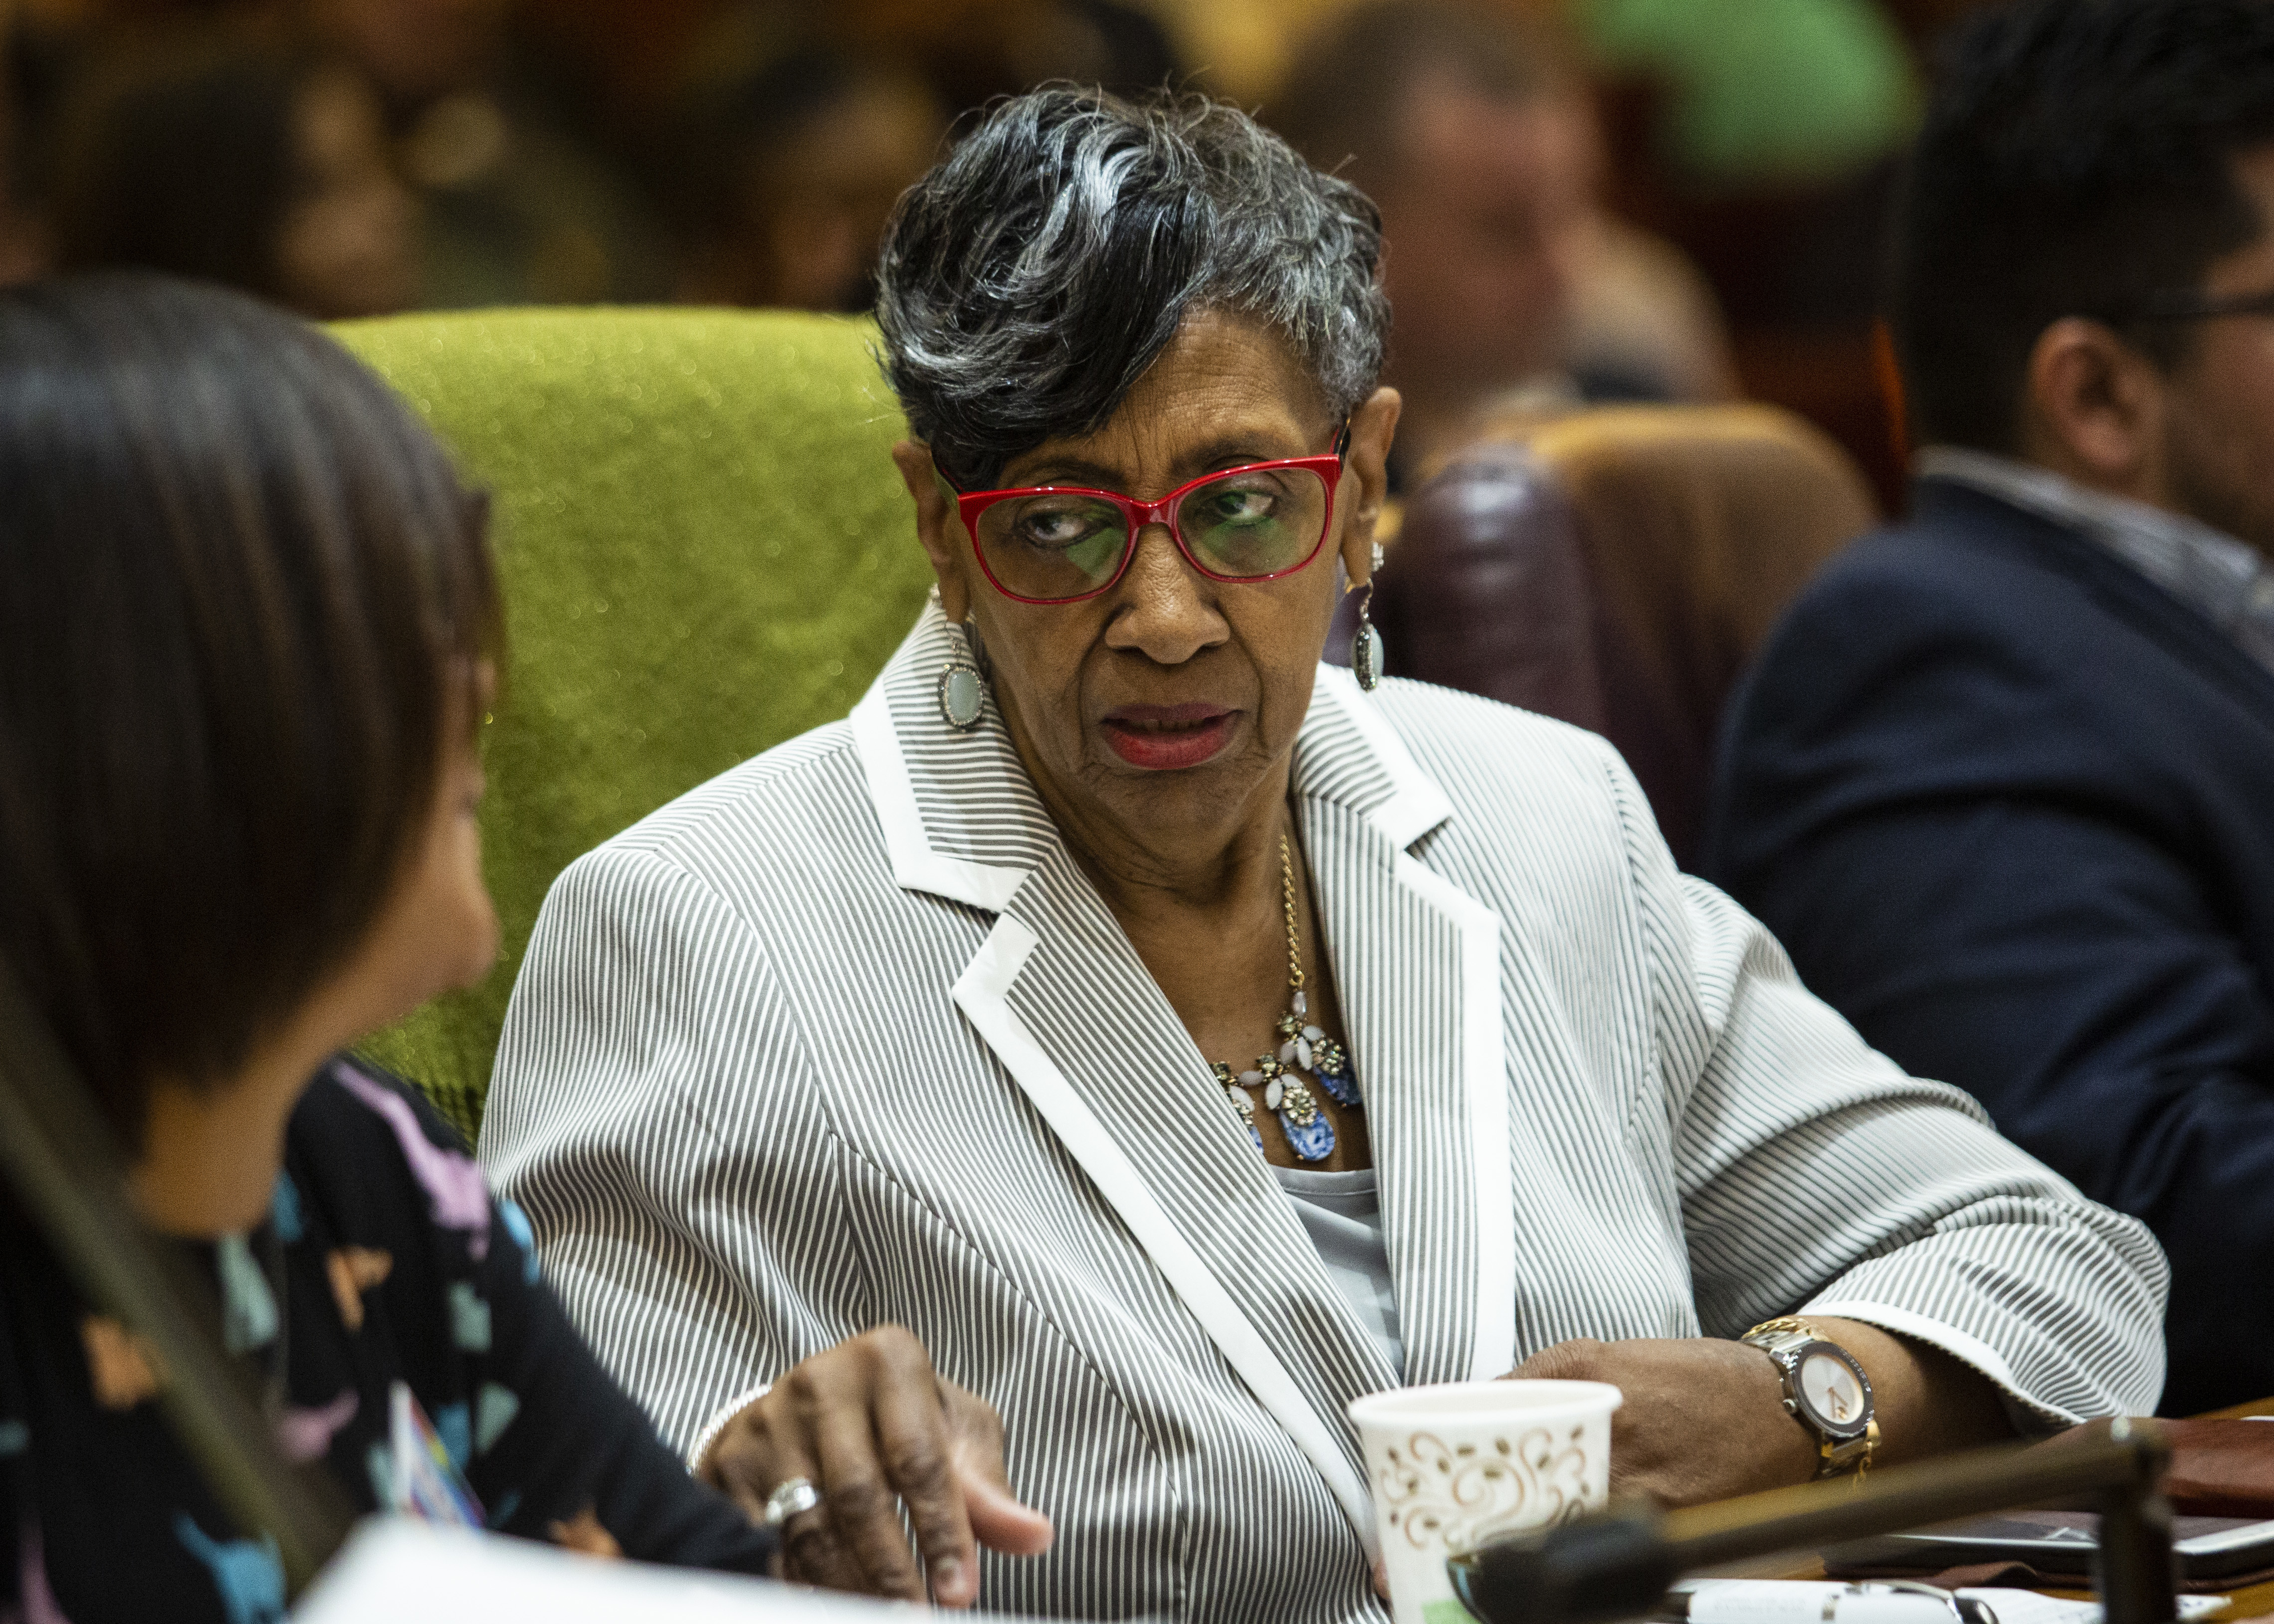 Ald. Carrie Austin (34th) at the June 12, 2019 Chicago City Council meeting.